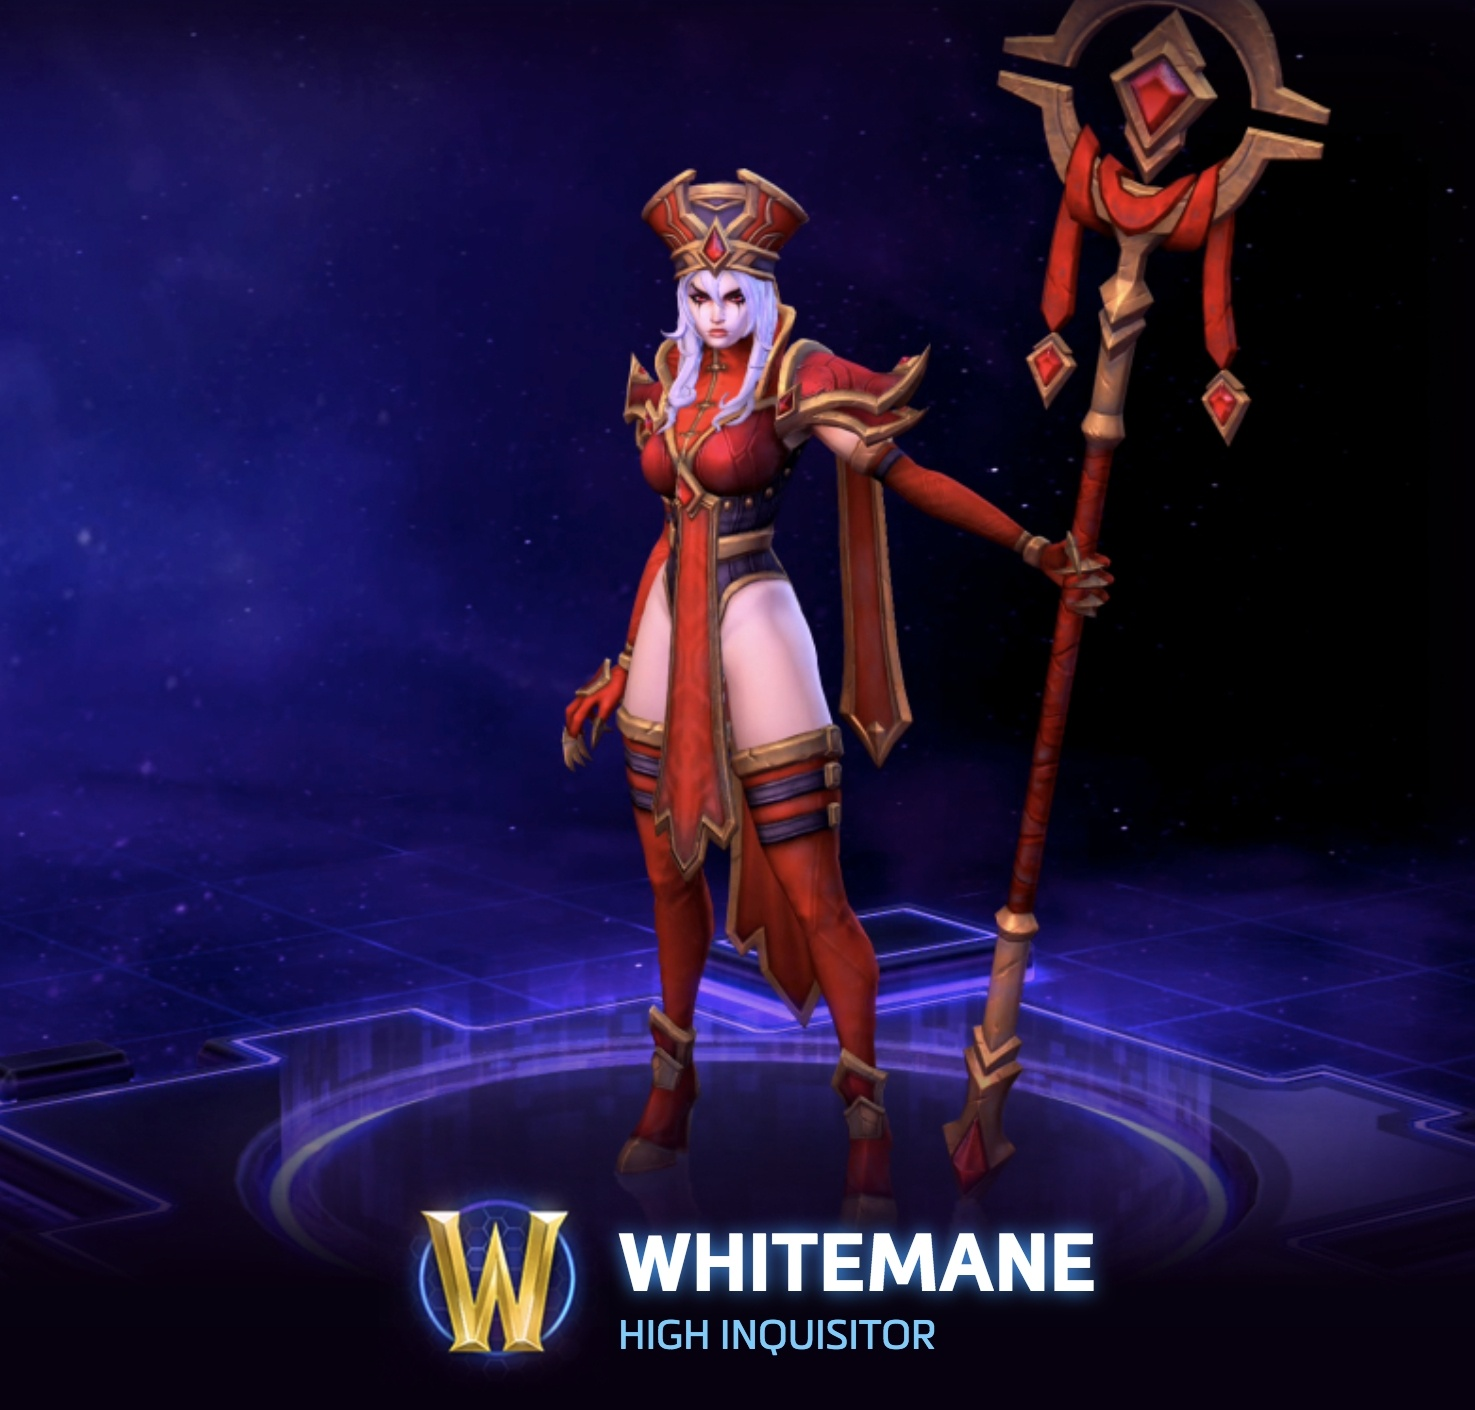 New Heroes Of The Storm Hero Revealed High Inquisitor Whitemane Wowhead News Mal'ganis can be obtained through goblins vs gnomes card packs, or through crafting. inquisitor whitemane